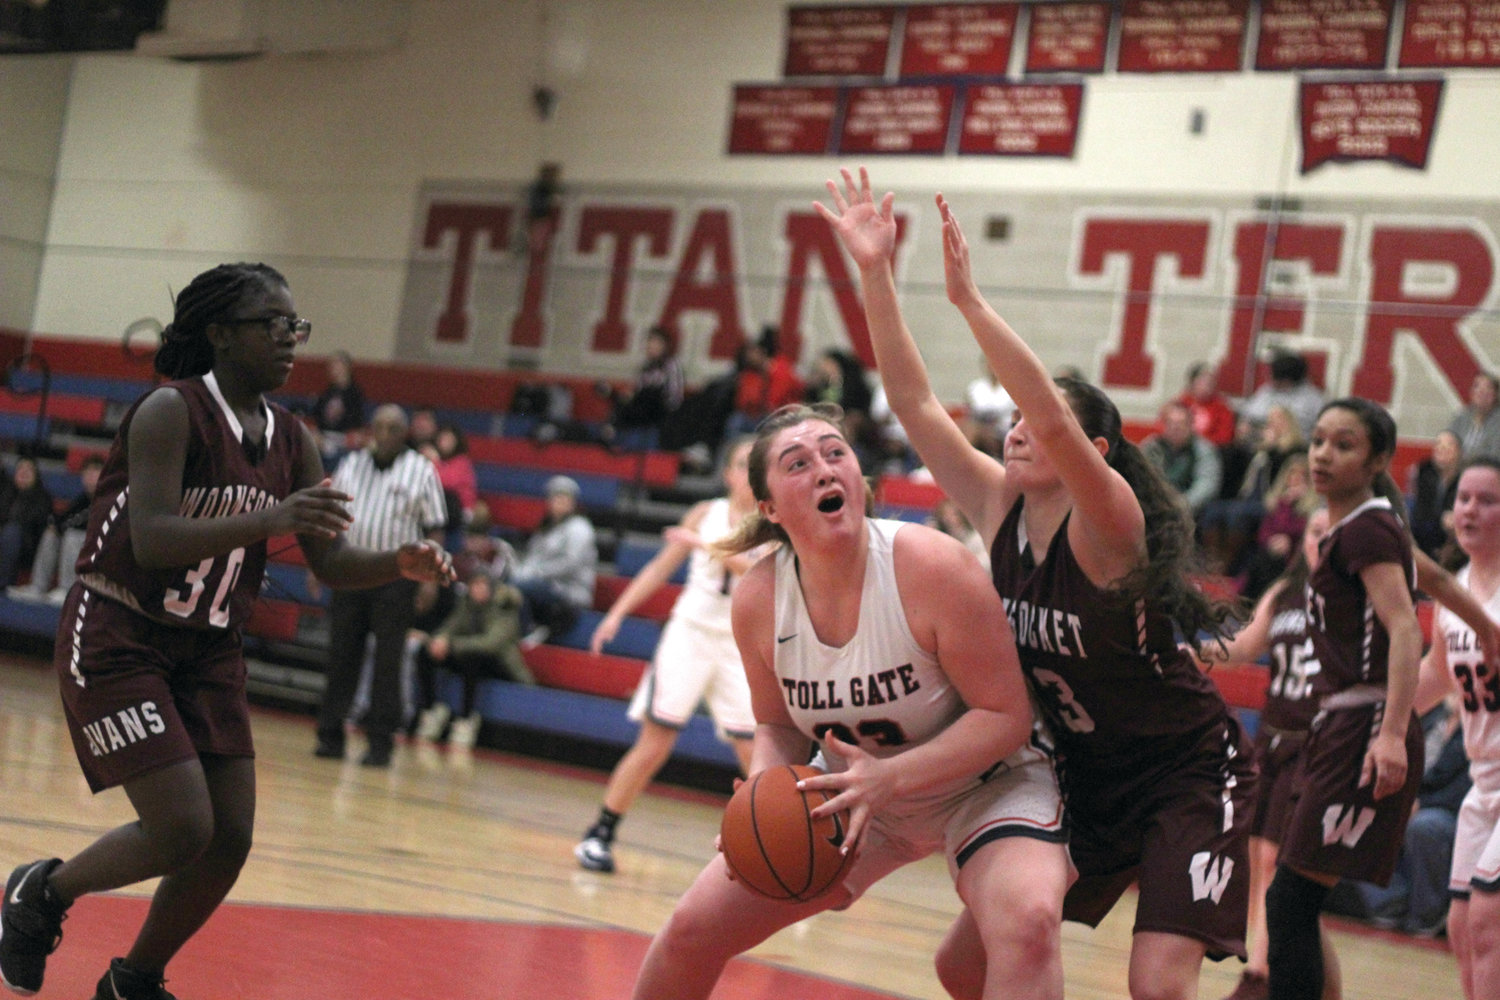 IN THE PAINT: Sam Bertrand of Toll Gate pivots to put up a shot against a Woonsocket defender during the Lady Titans' 48-22 loss on Tuesday.